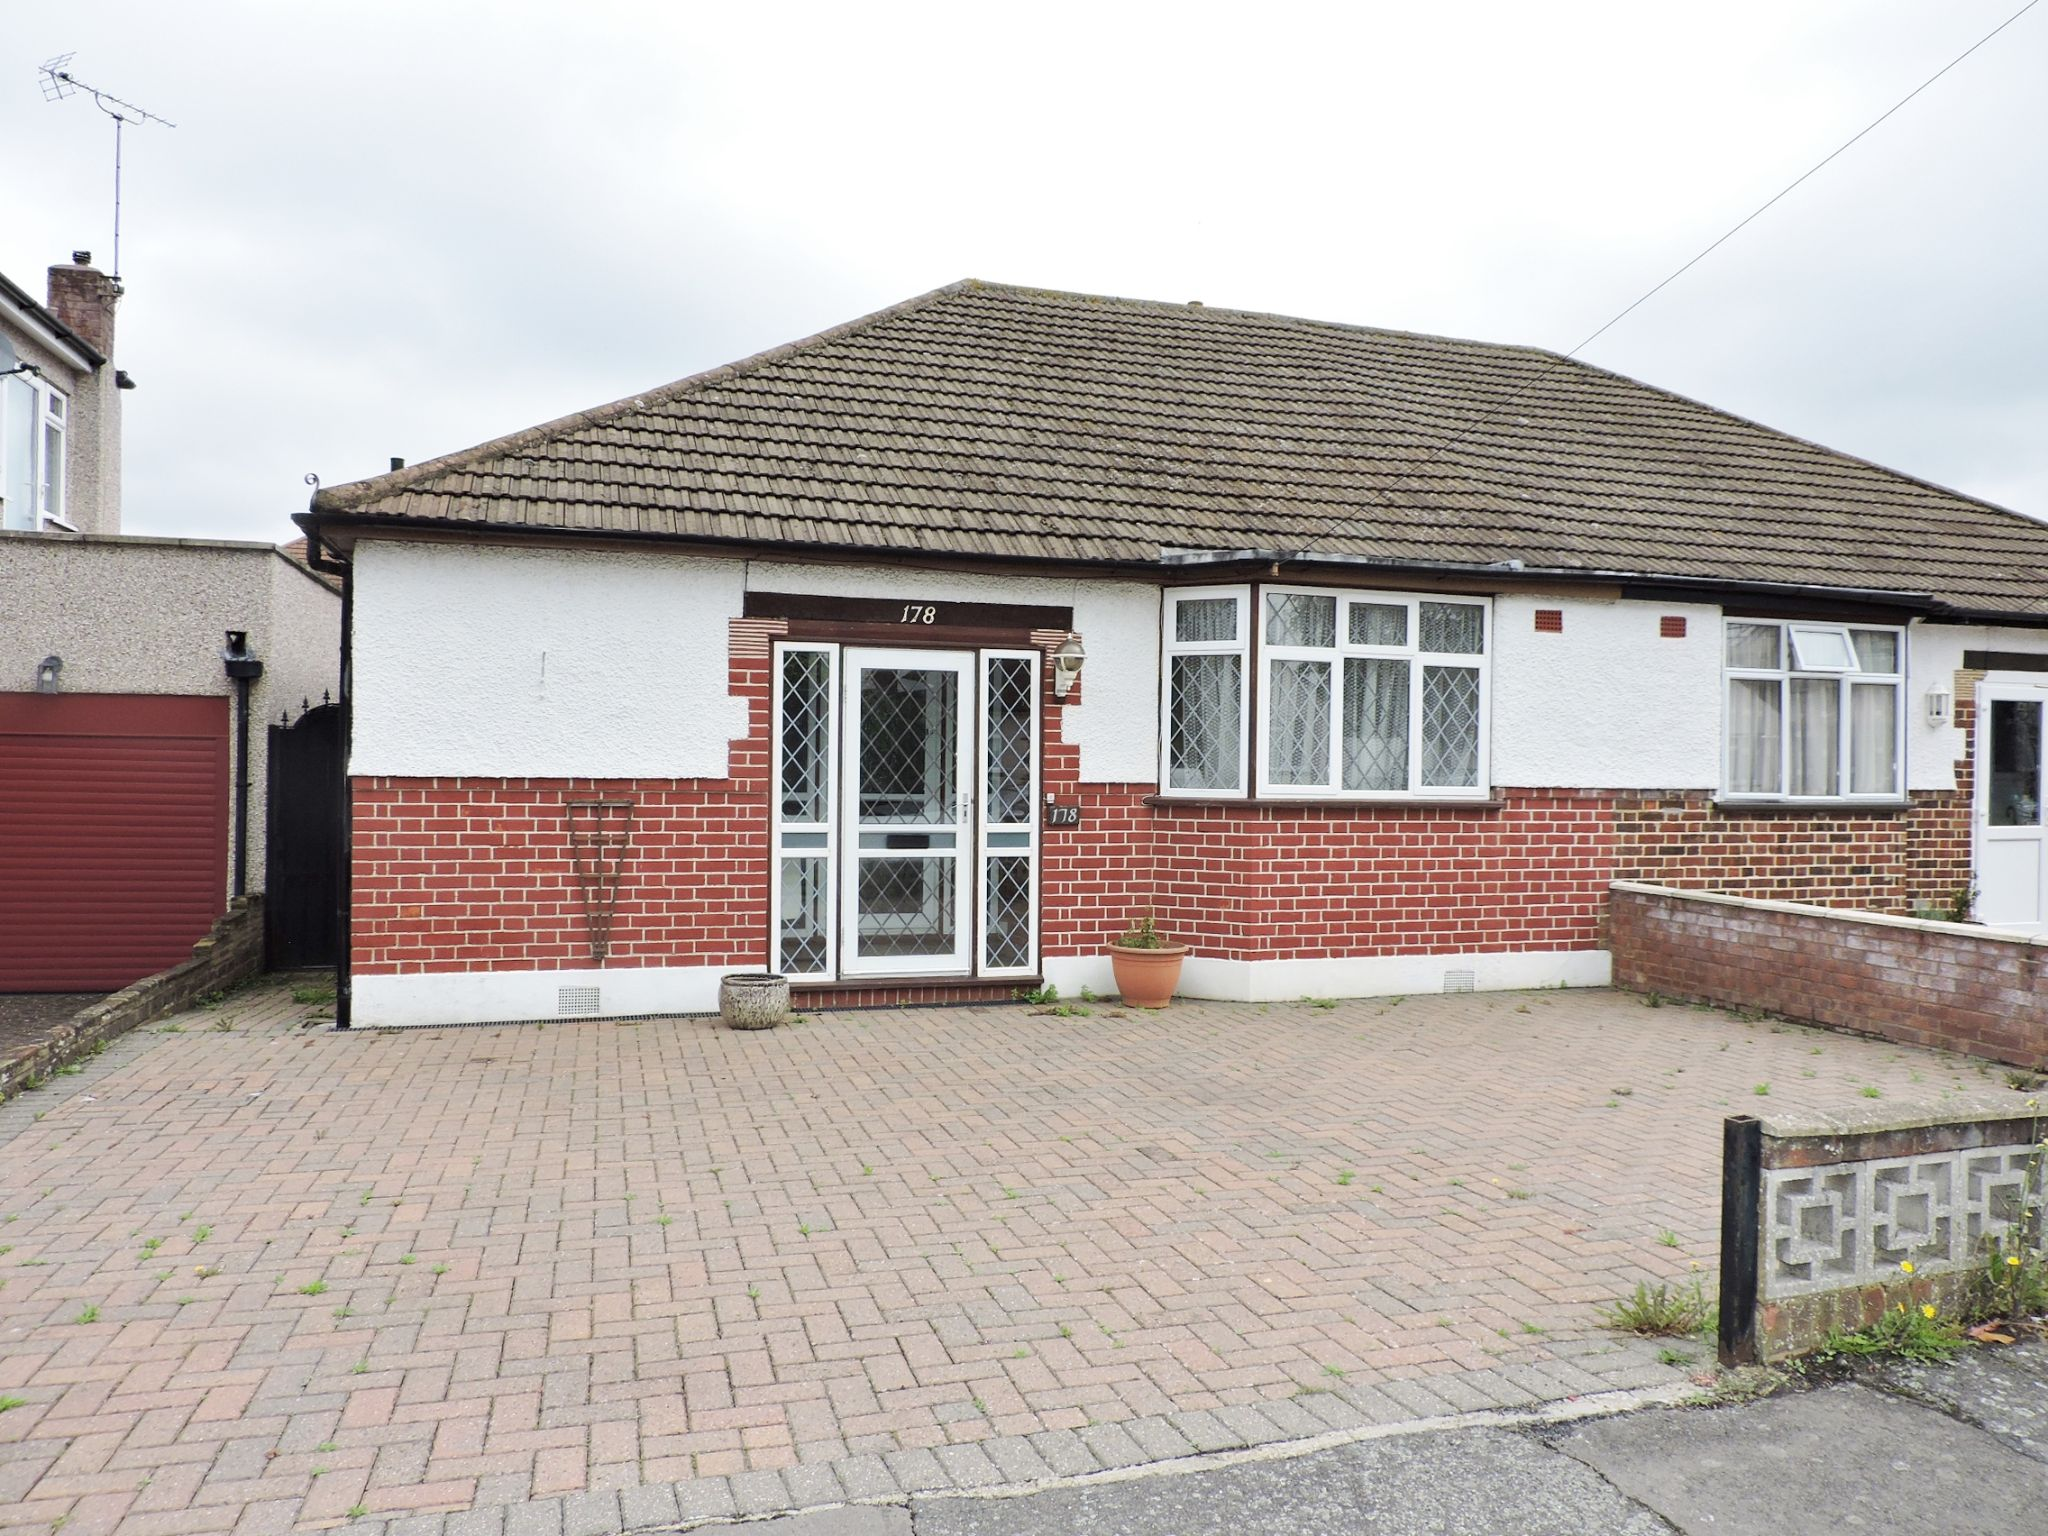 2 bedroom semi-detached bungalow Let in Epsom - Photograph 1